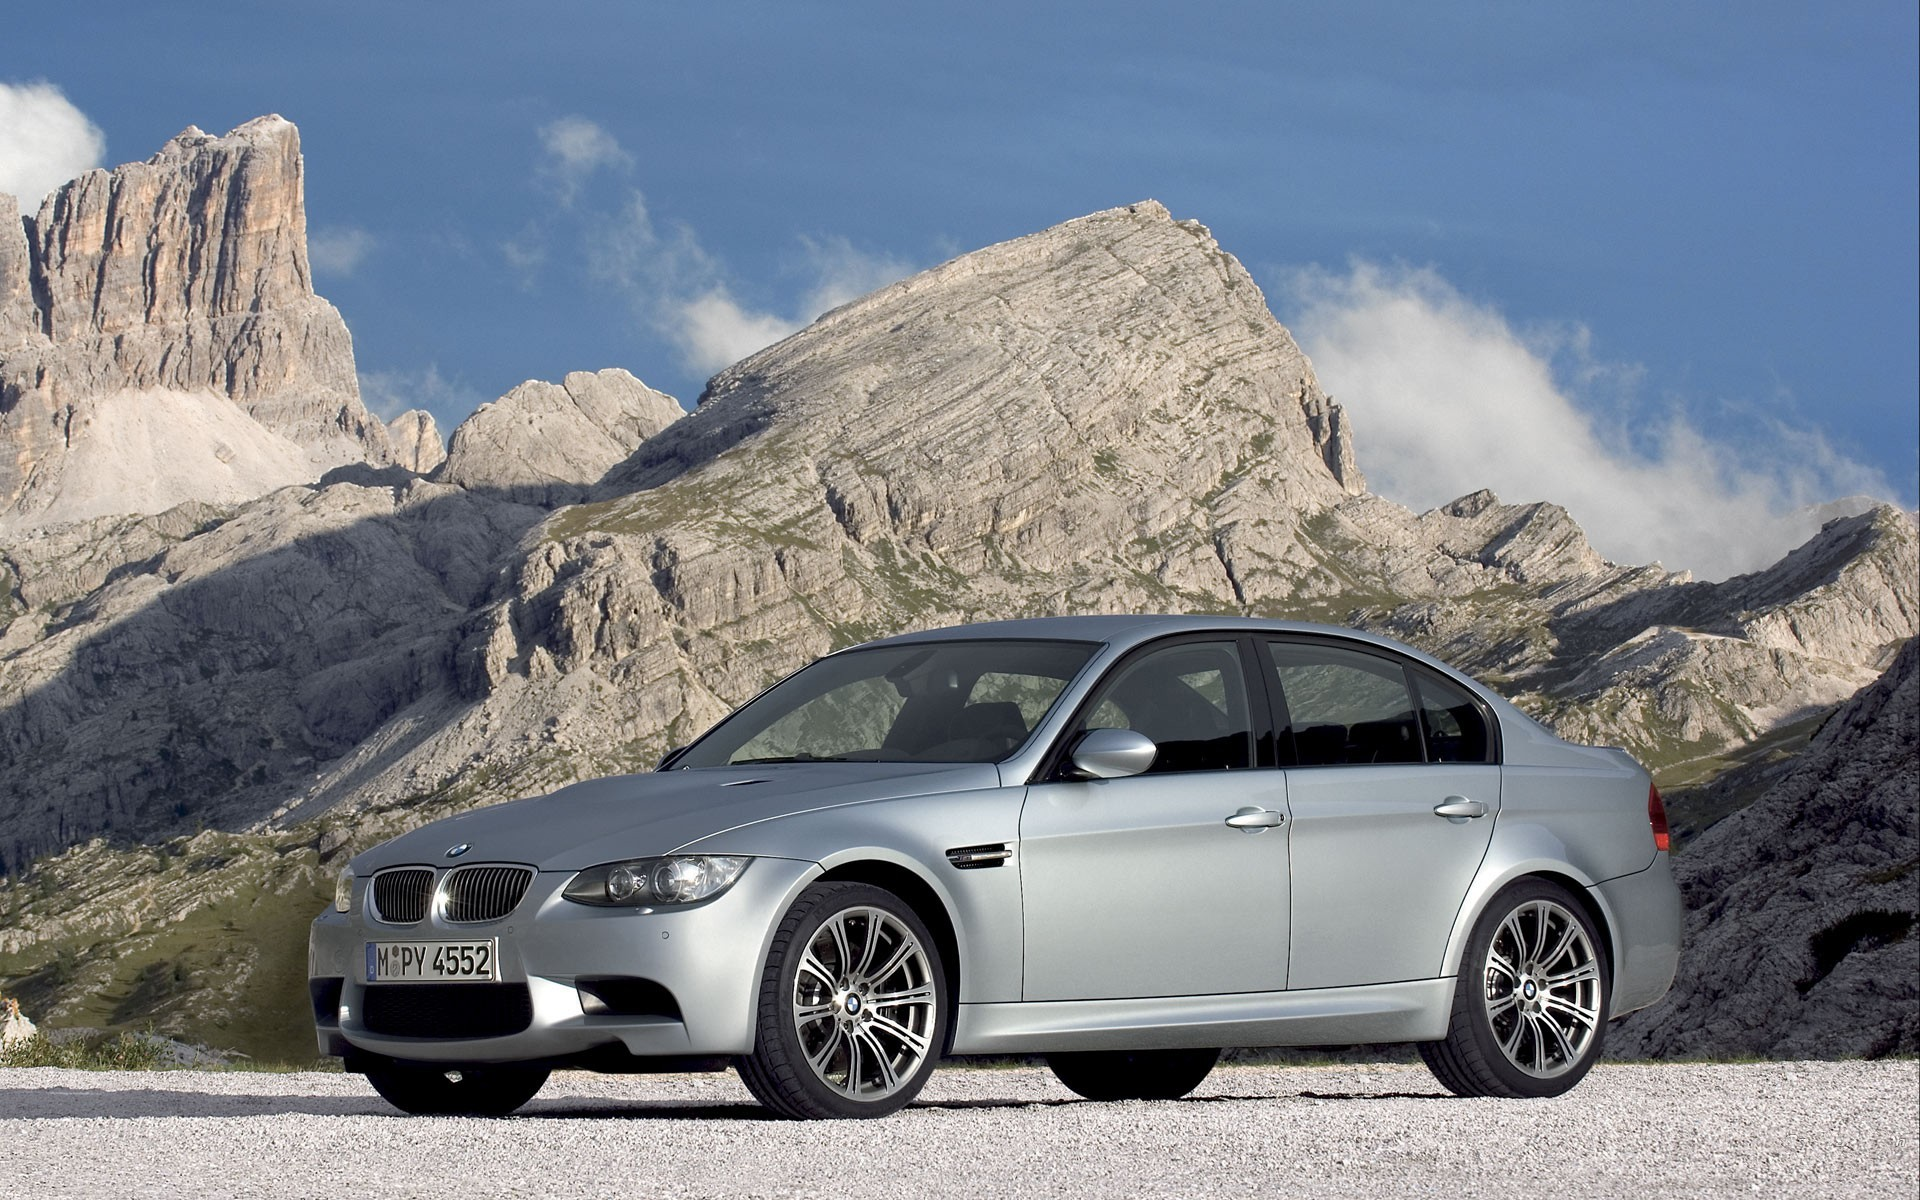 BMW cars HD Wallpaper